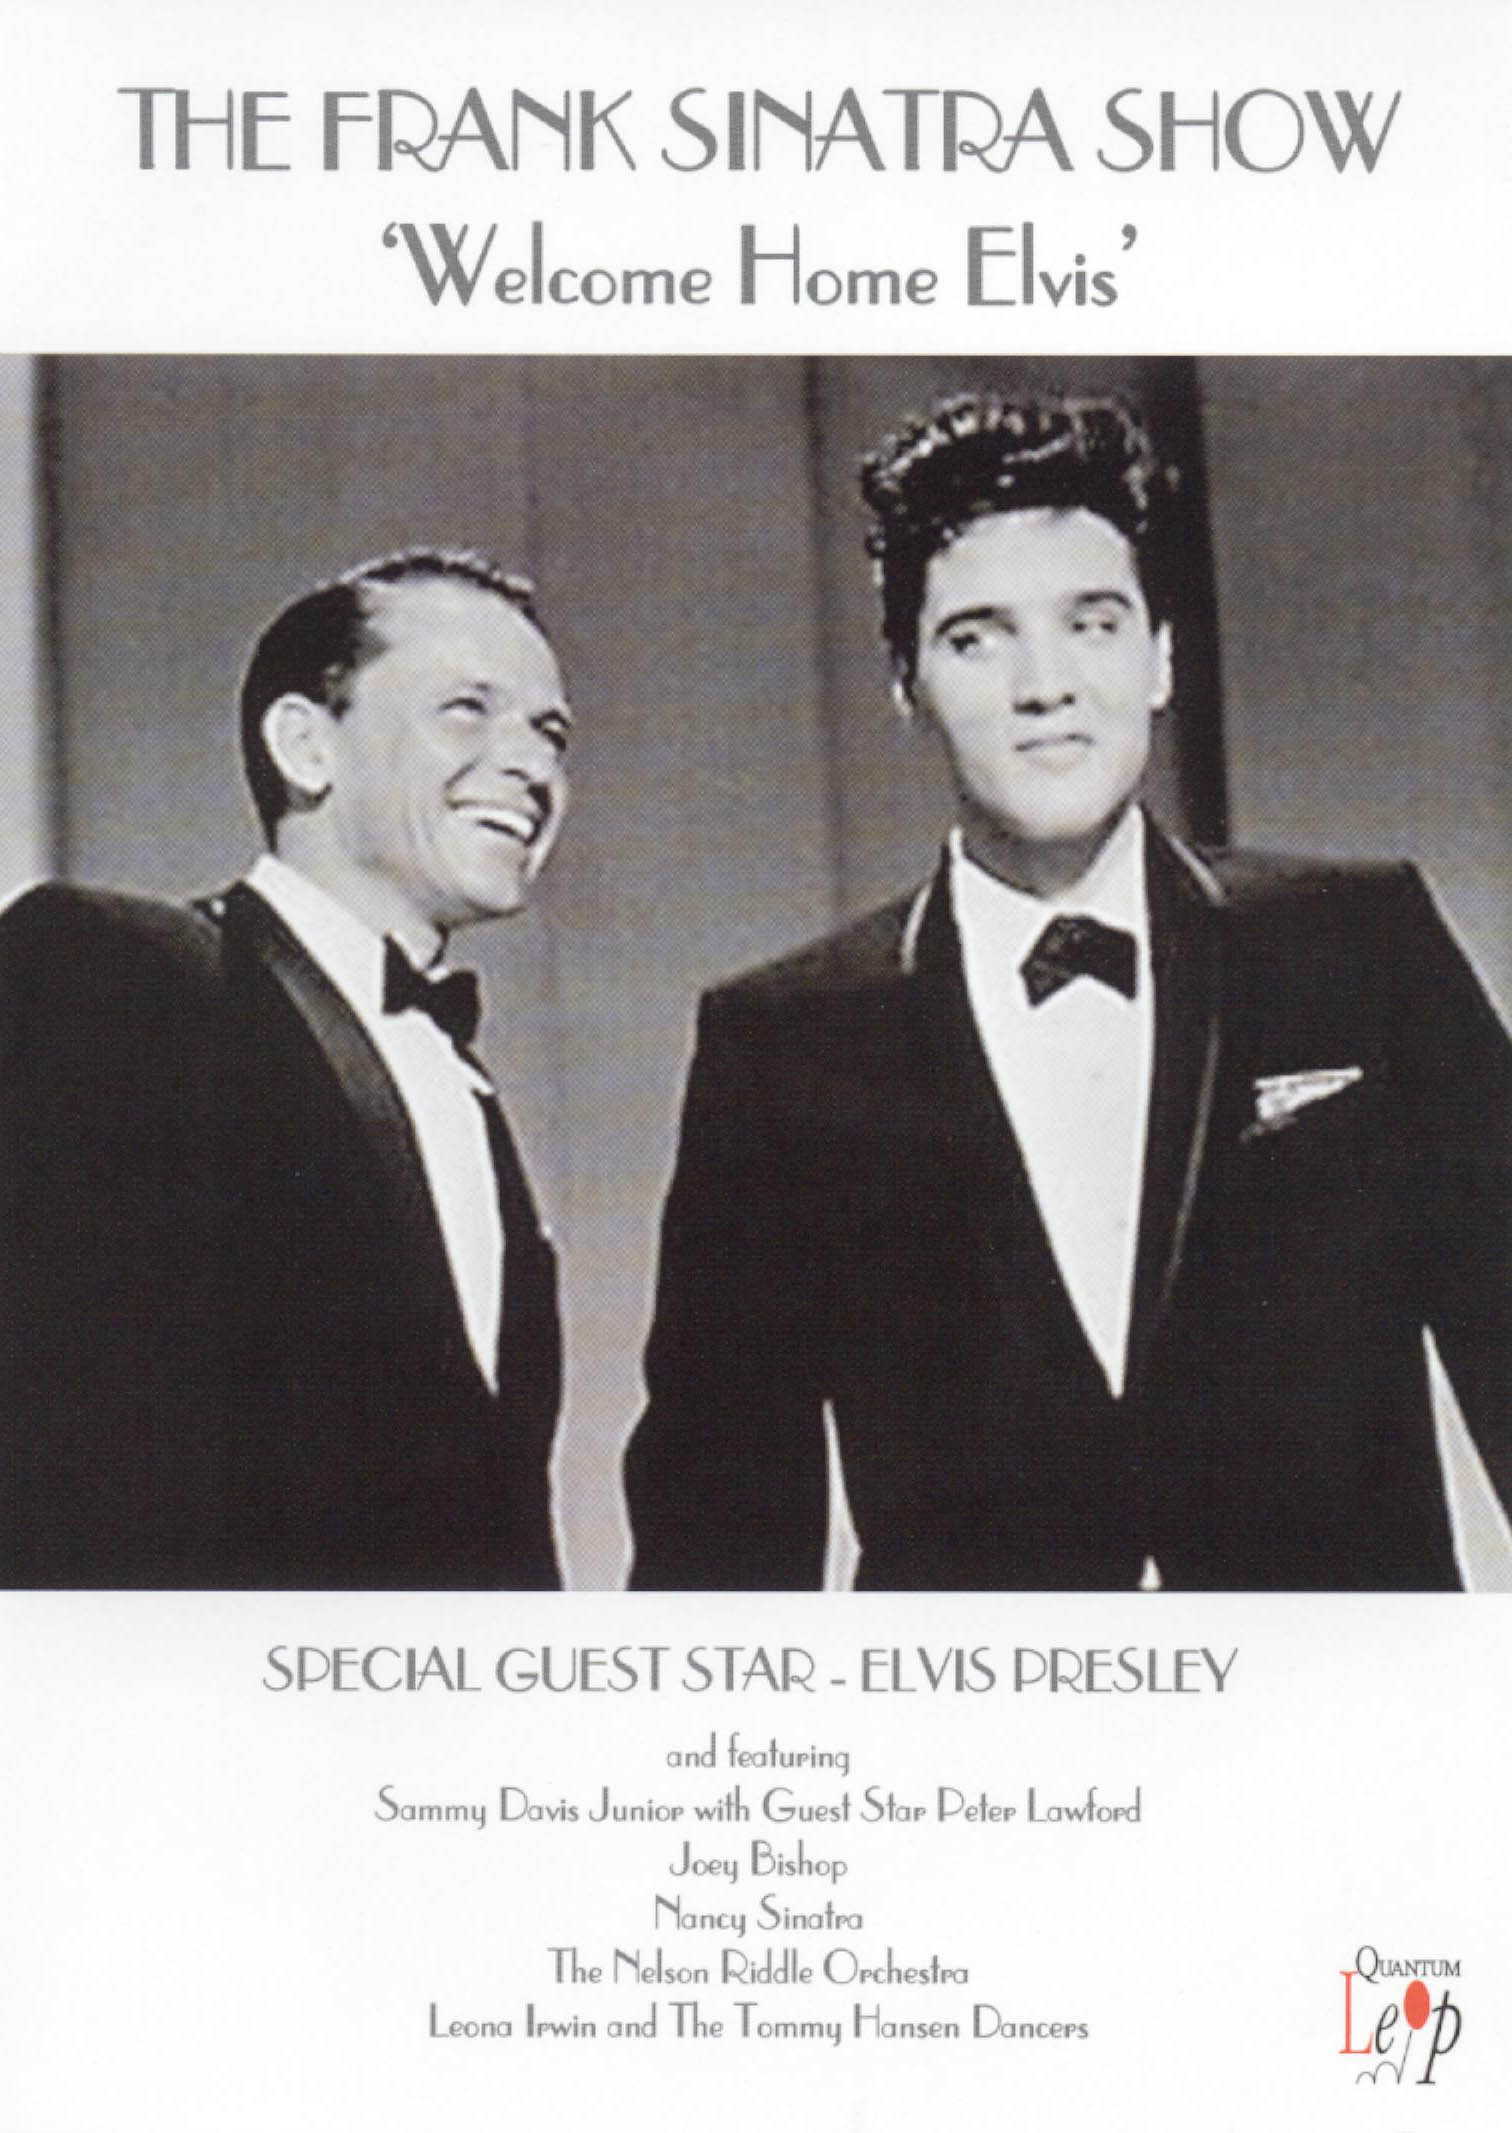 The Frank Sinatra Show: Welcome Home Elvis (1960)